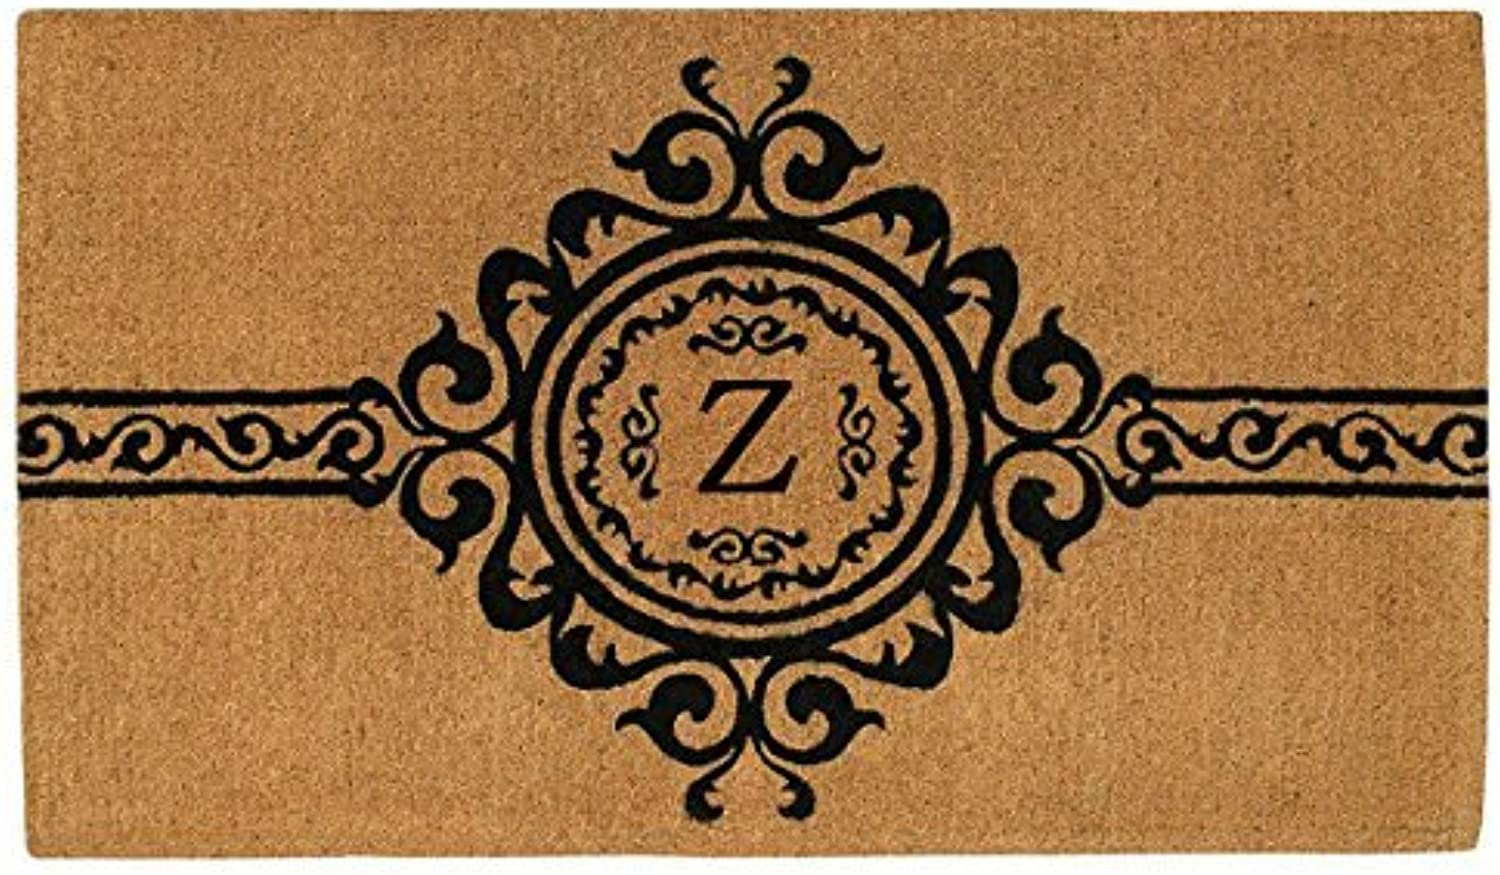 Home & More 180071830Z Garbo Extra-Thick Doormat, 18  x 30  x 1.50 , Monogrammed Letter Z, Natural Black